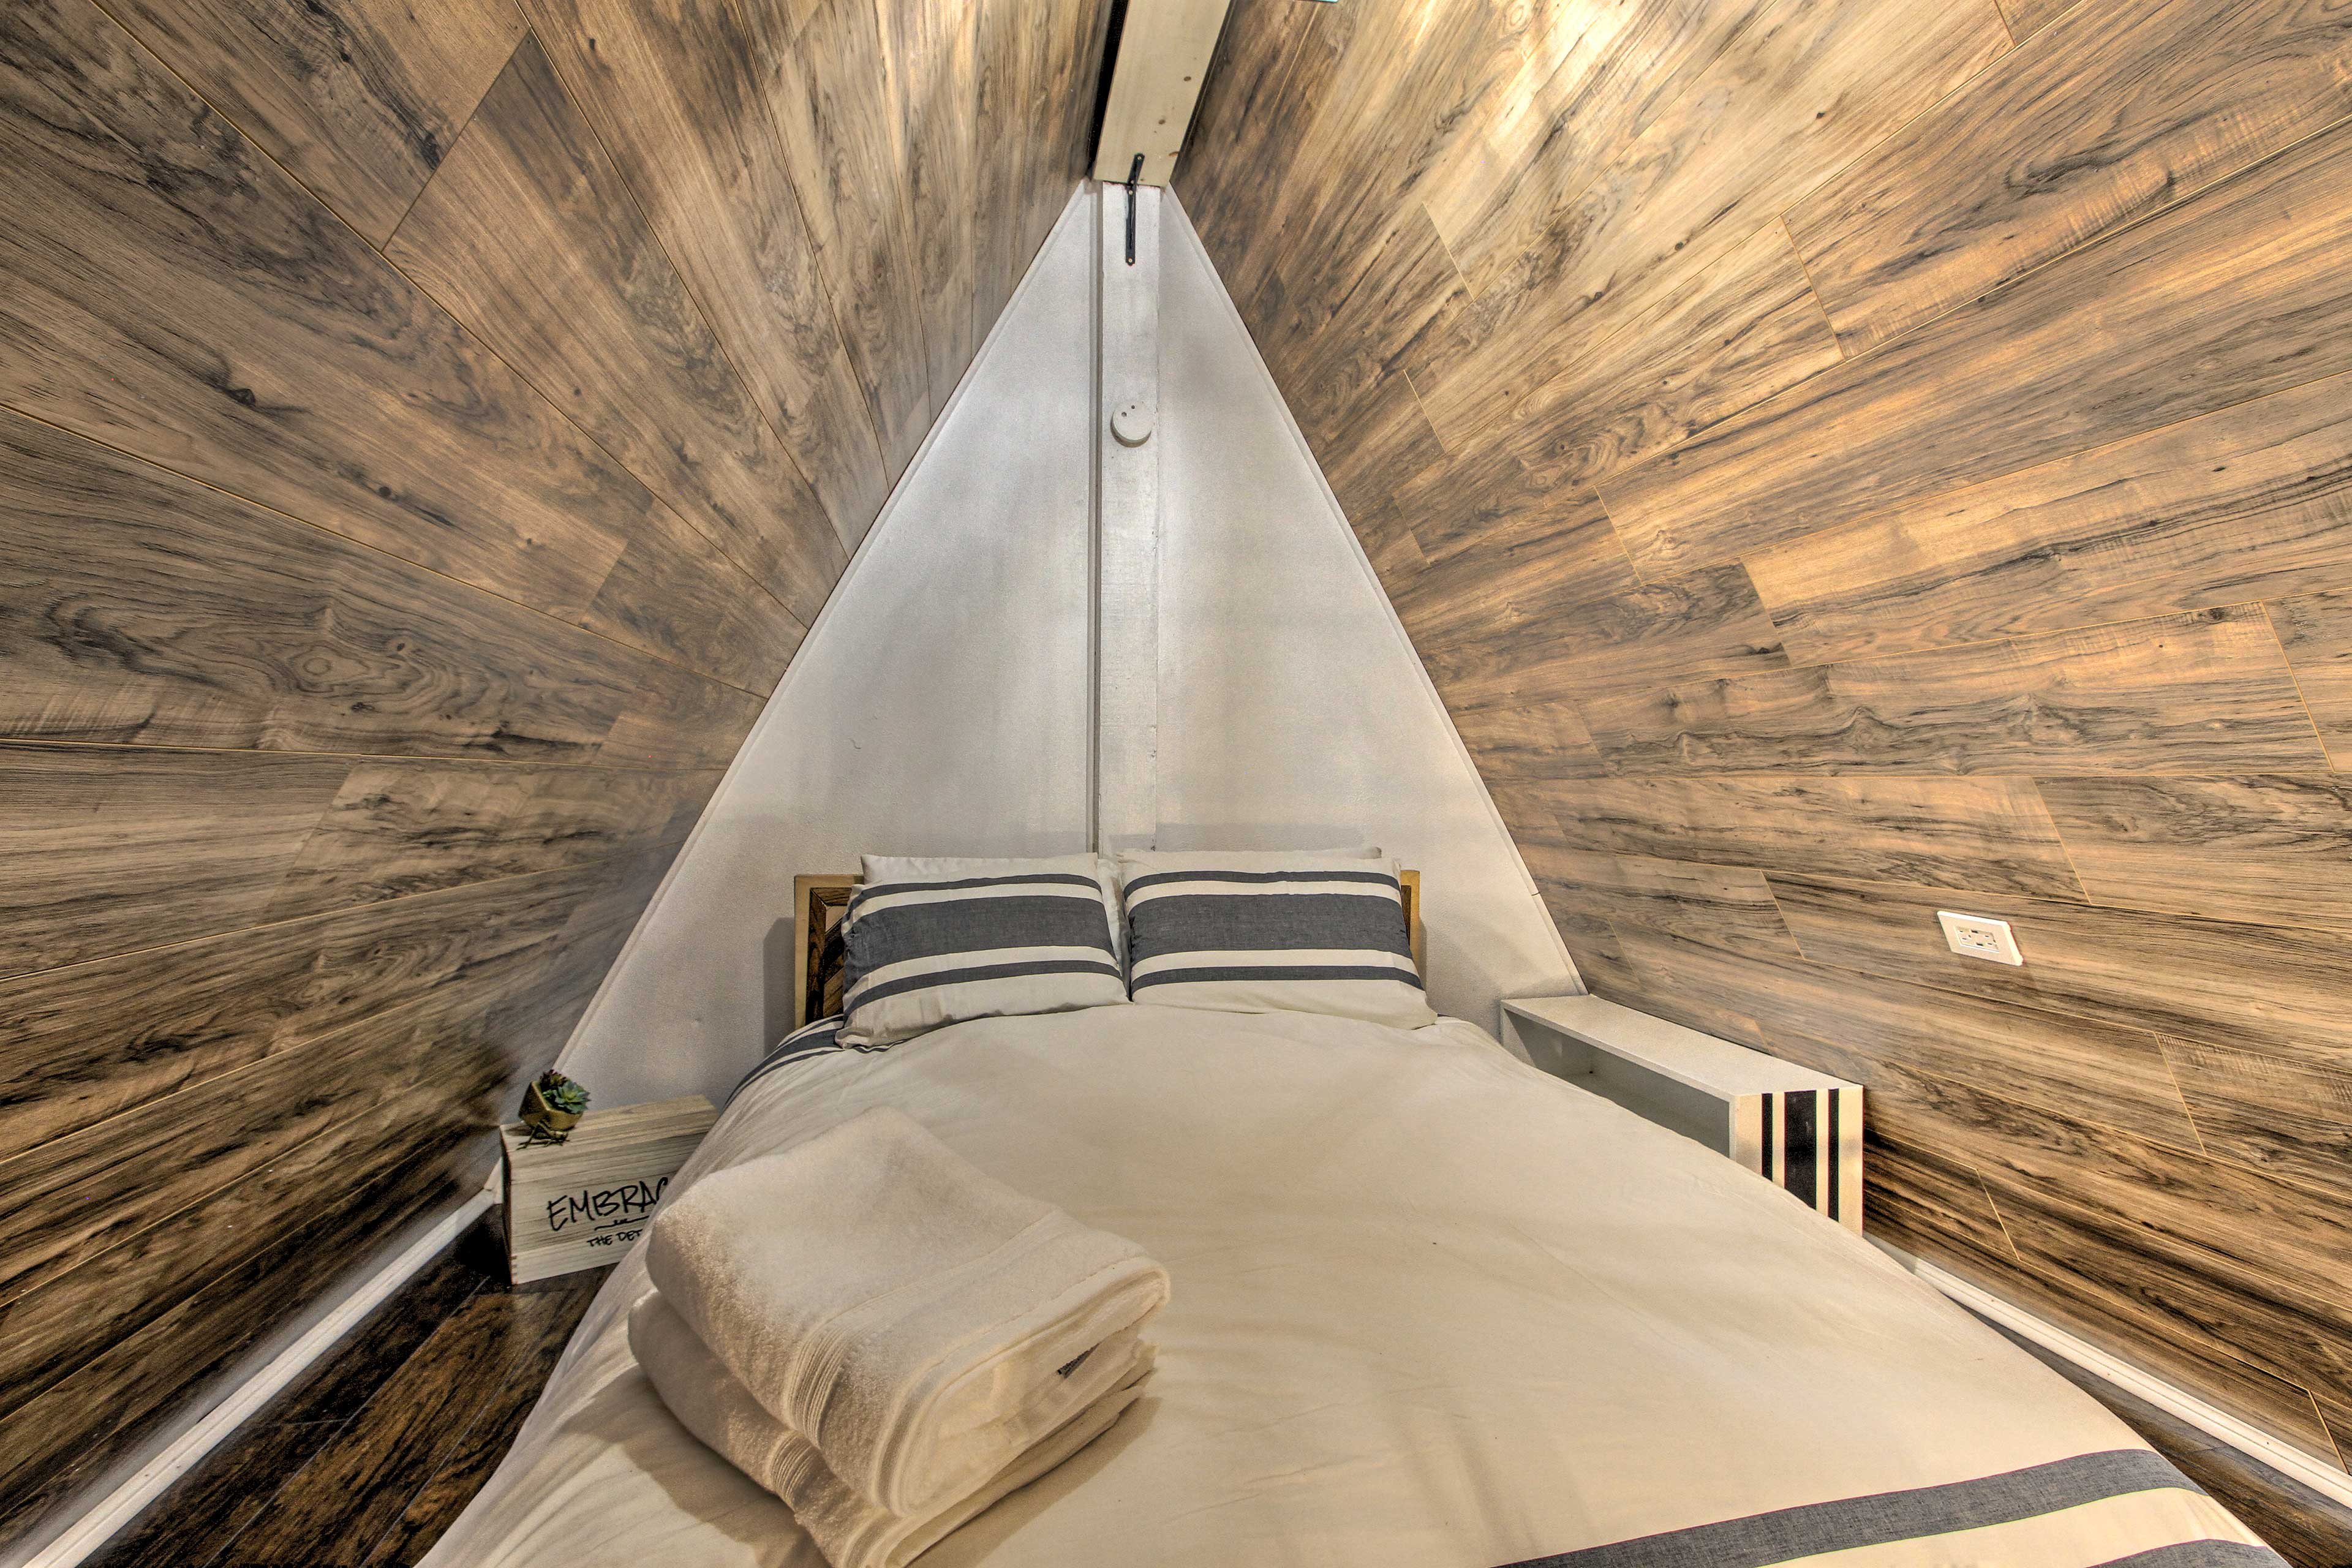 Two guests can snooze in the cozy loft.